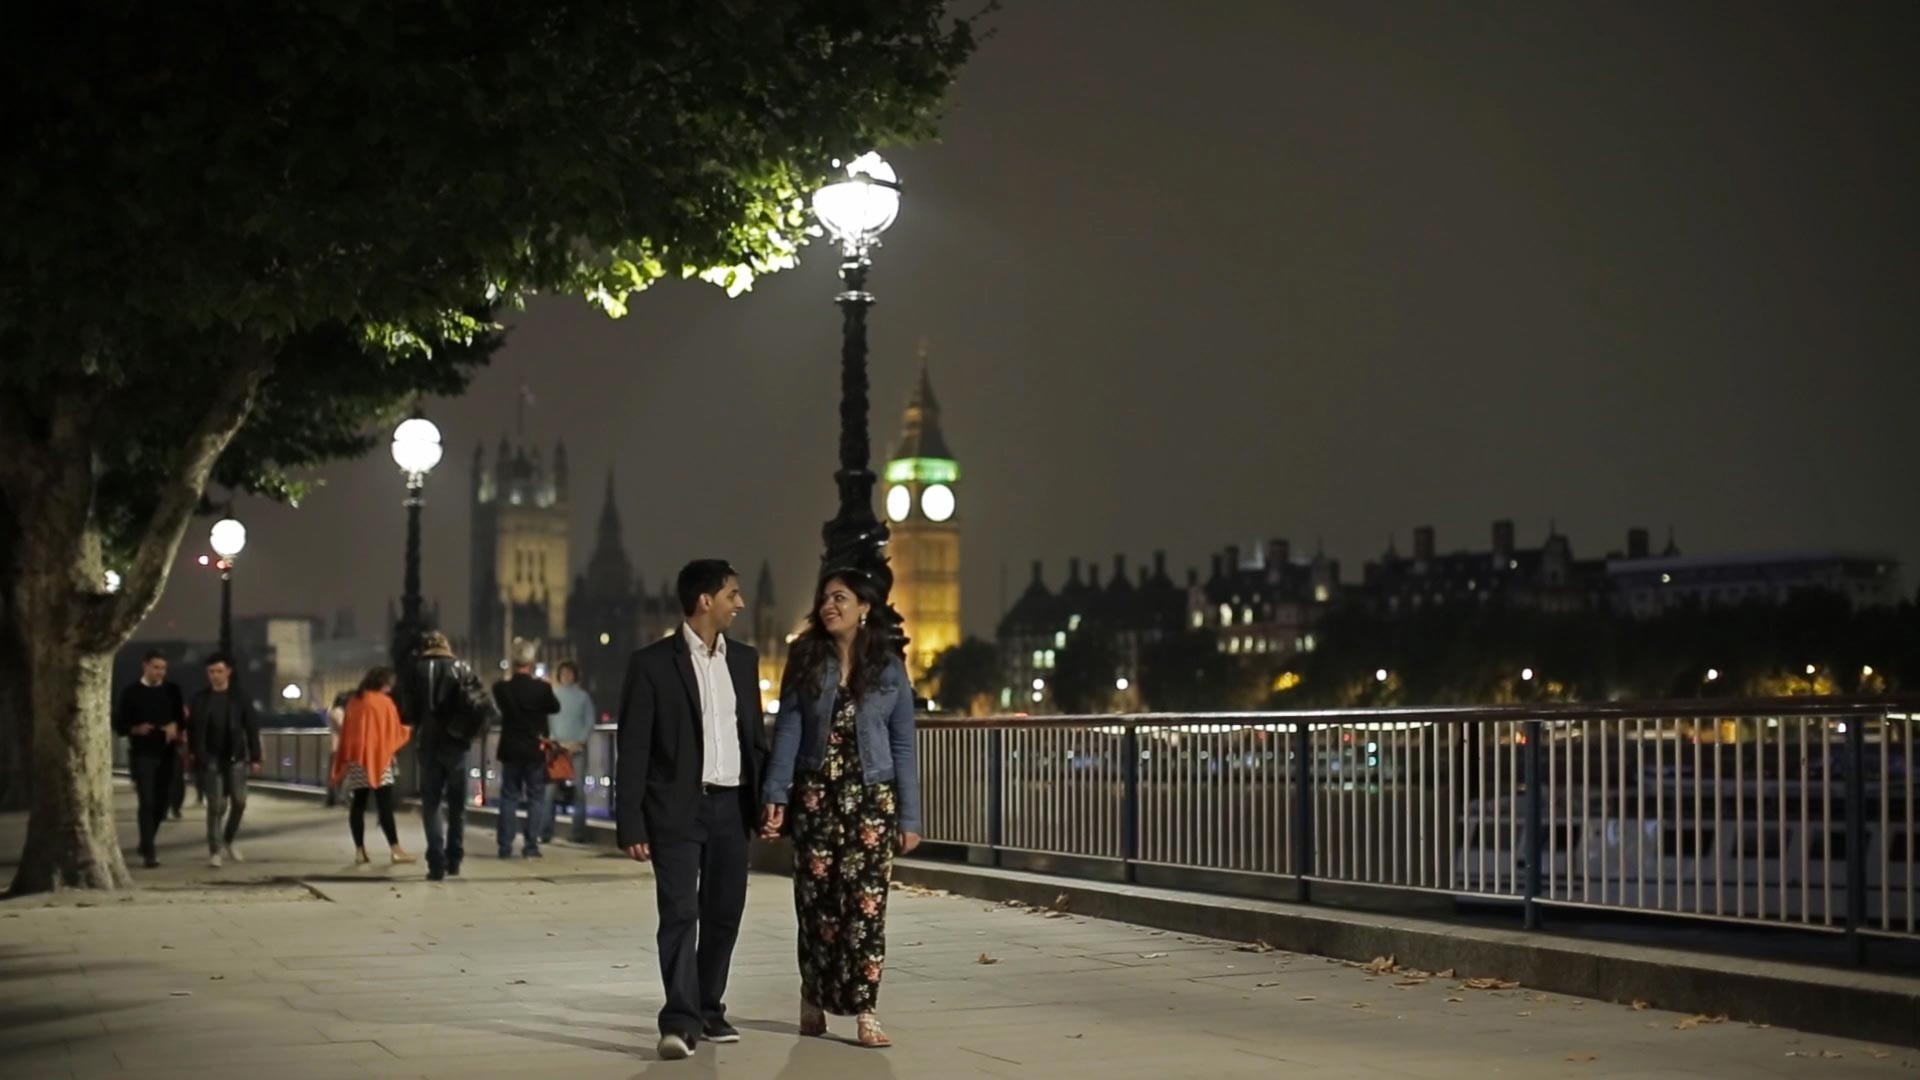 ENGAGEMENT CINEMATOGRAPHY. LONDON BY NIGHT